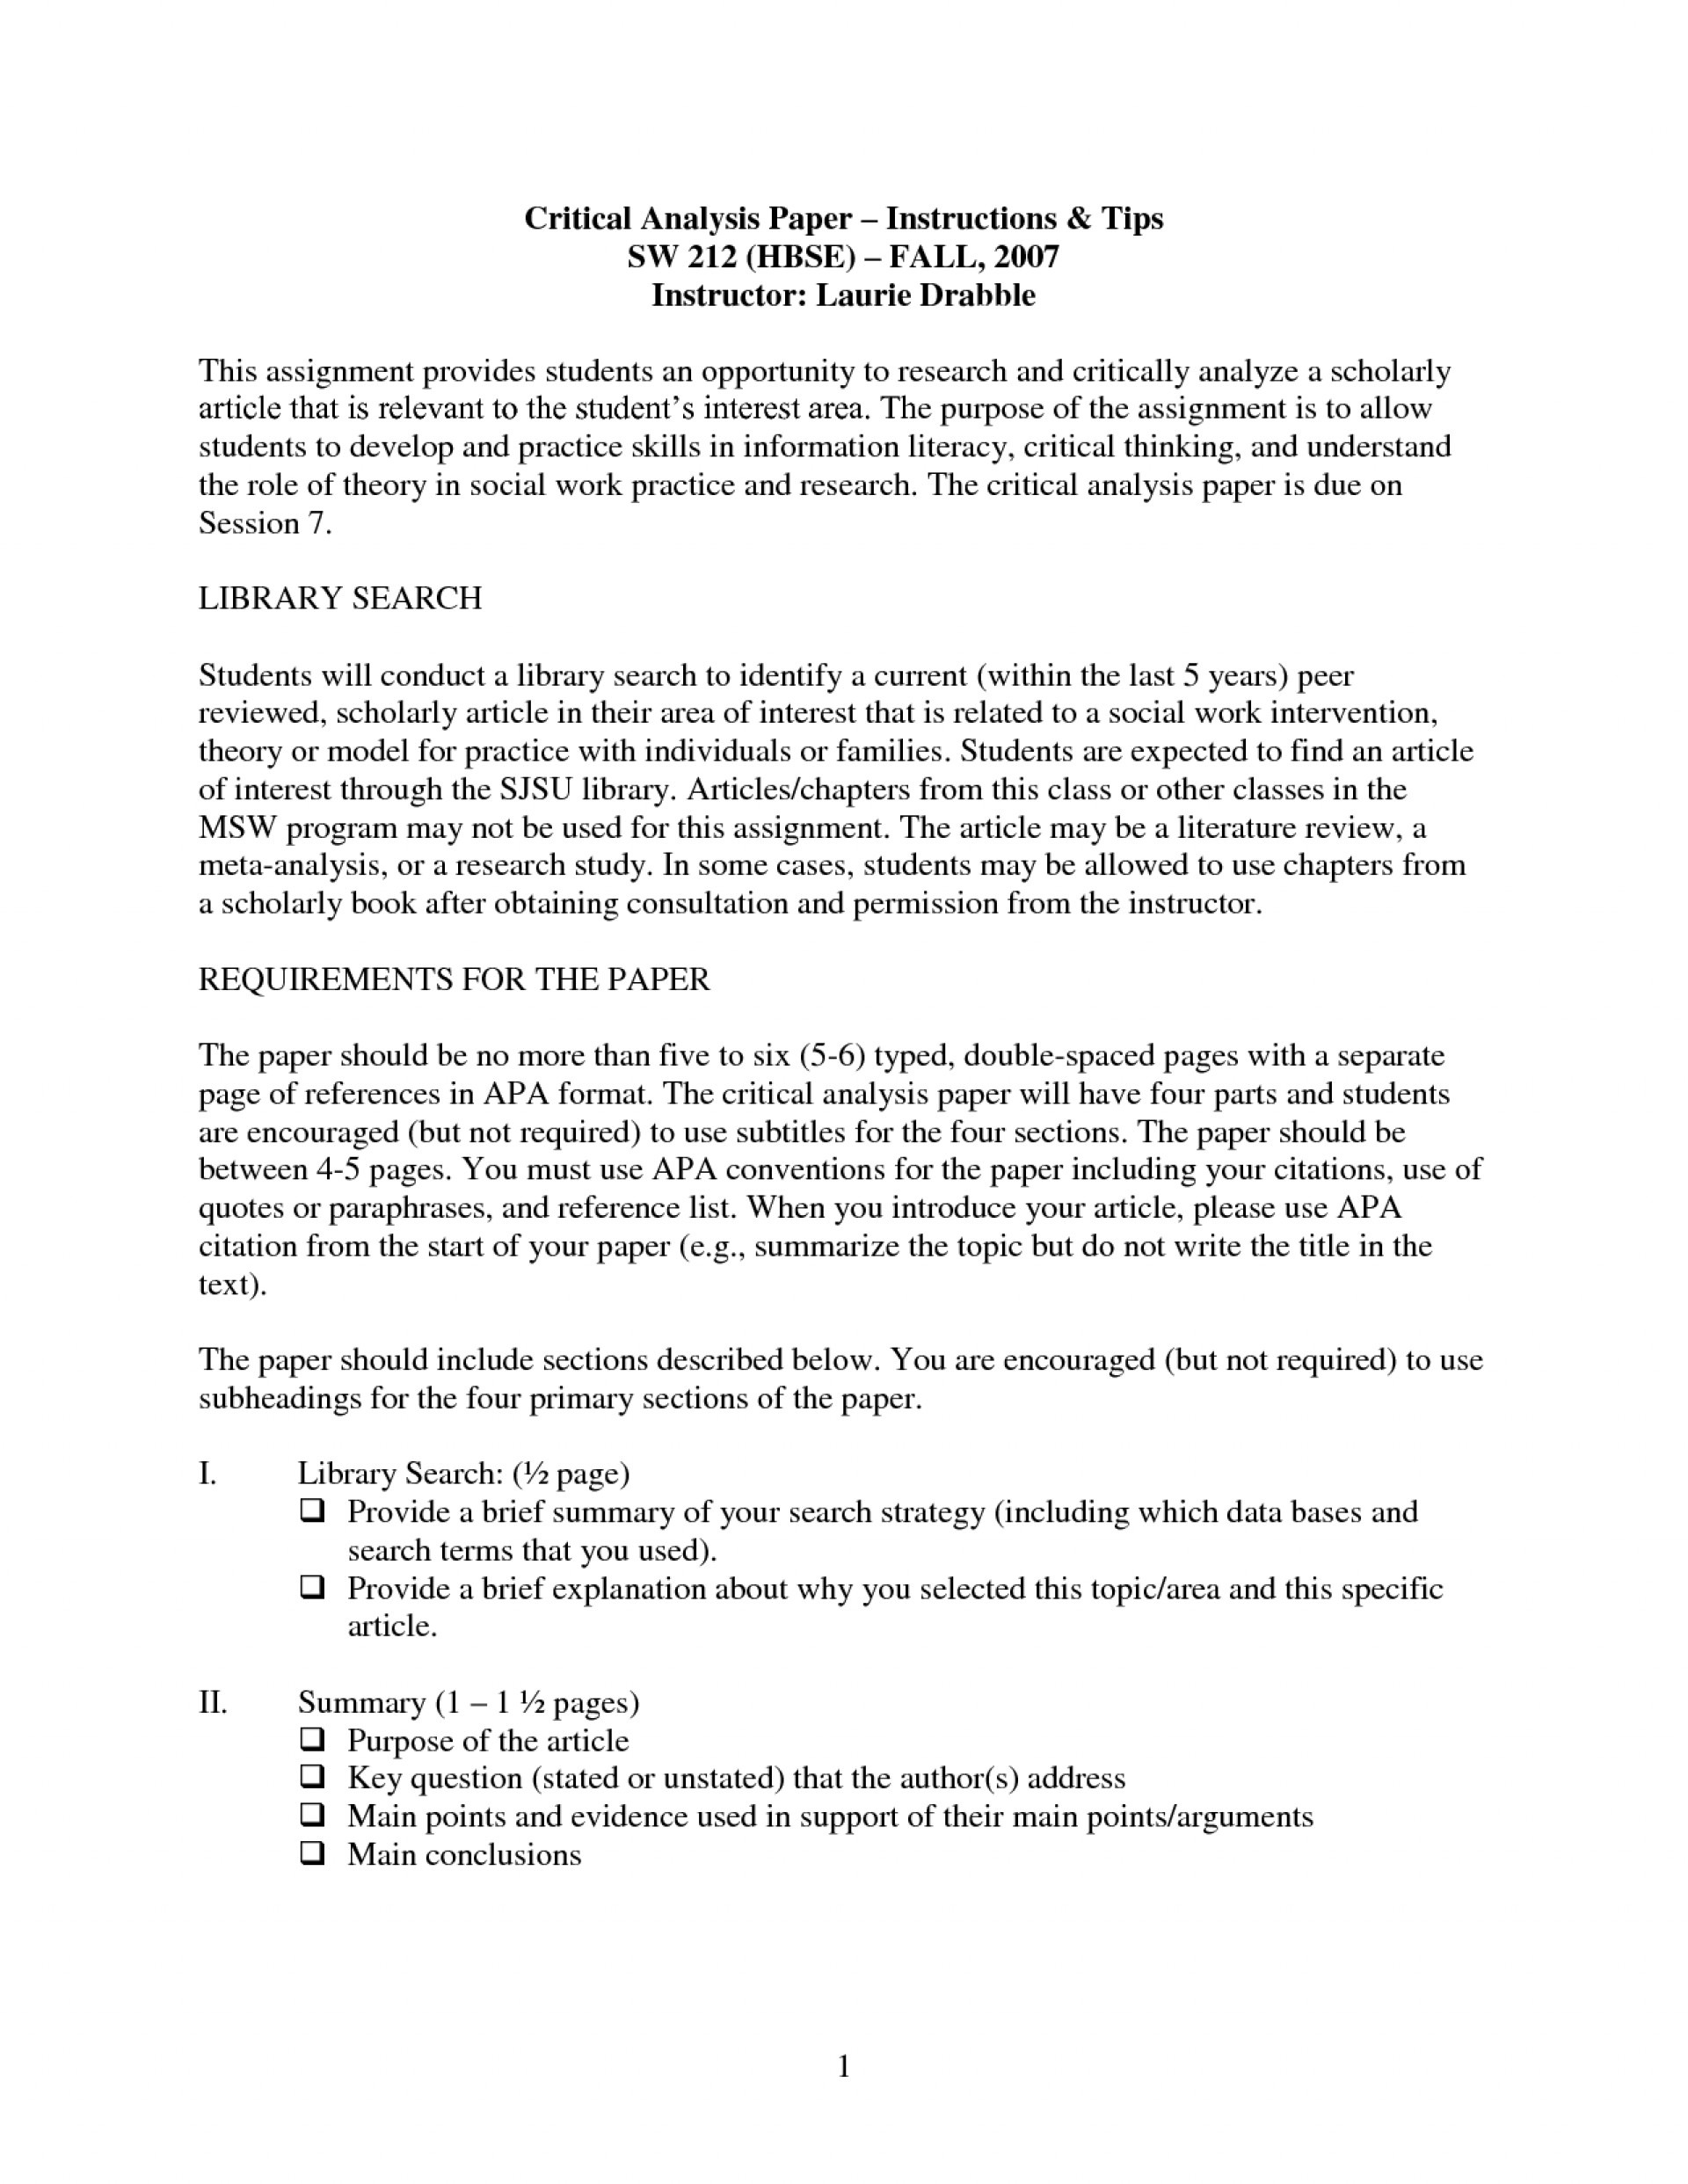 002 How To Begin Critical Essay Example Analysis Paper Literary Research Write Movie Review Sample Qaky0 Film Evaluation Amazing A Structure Response 1920